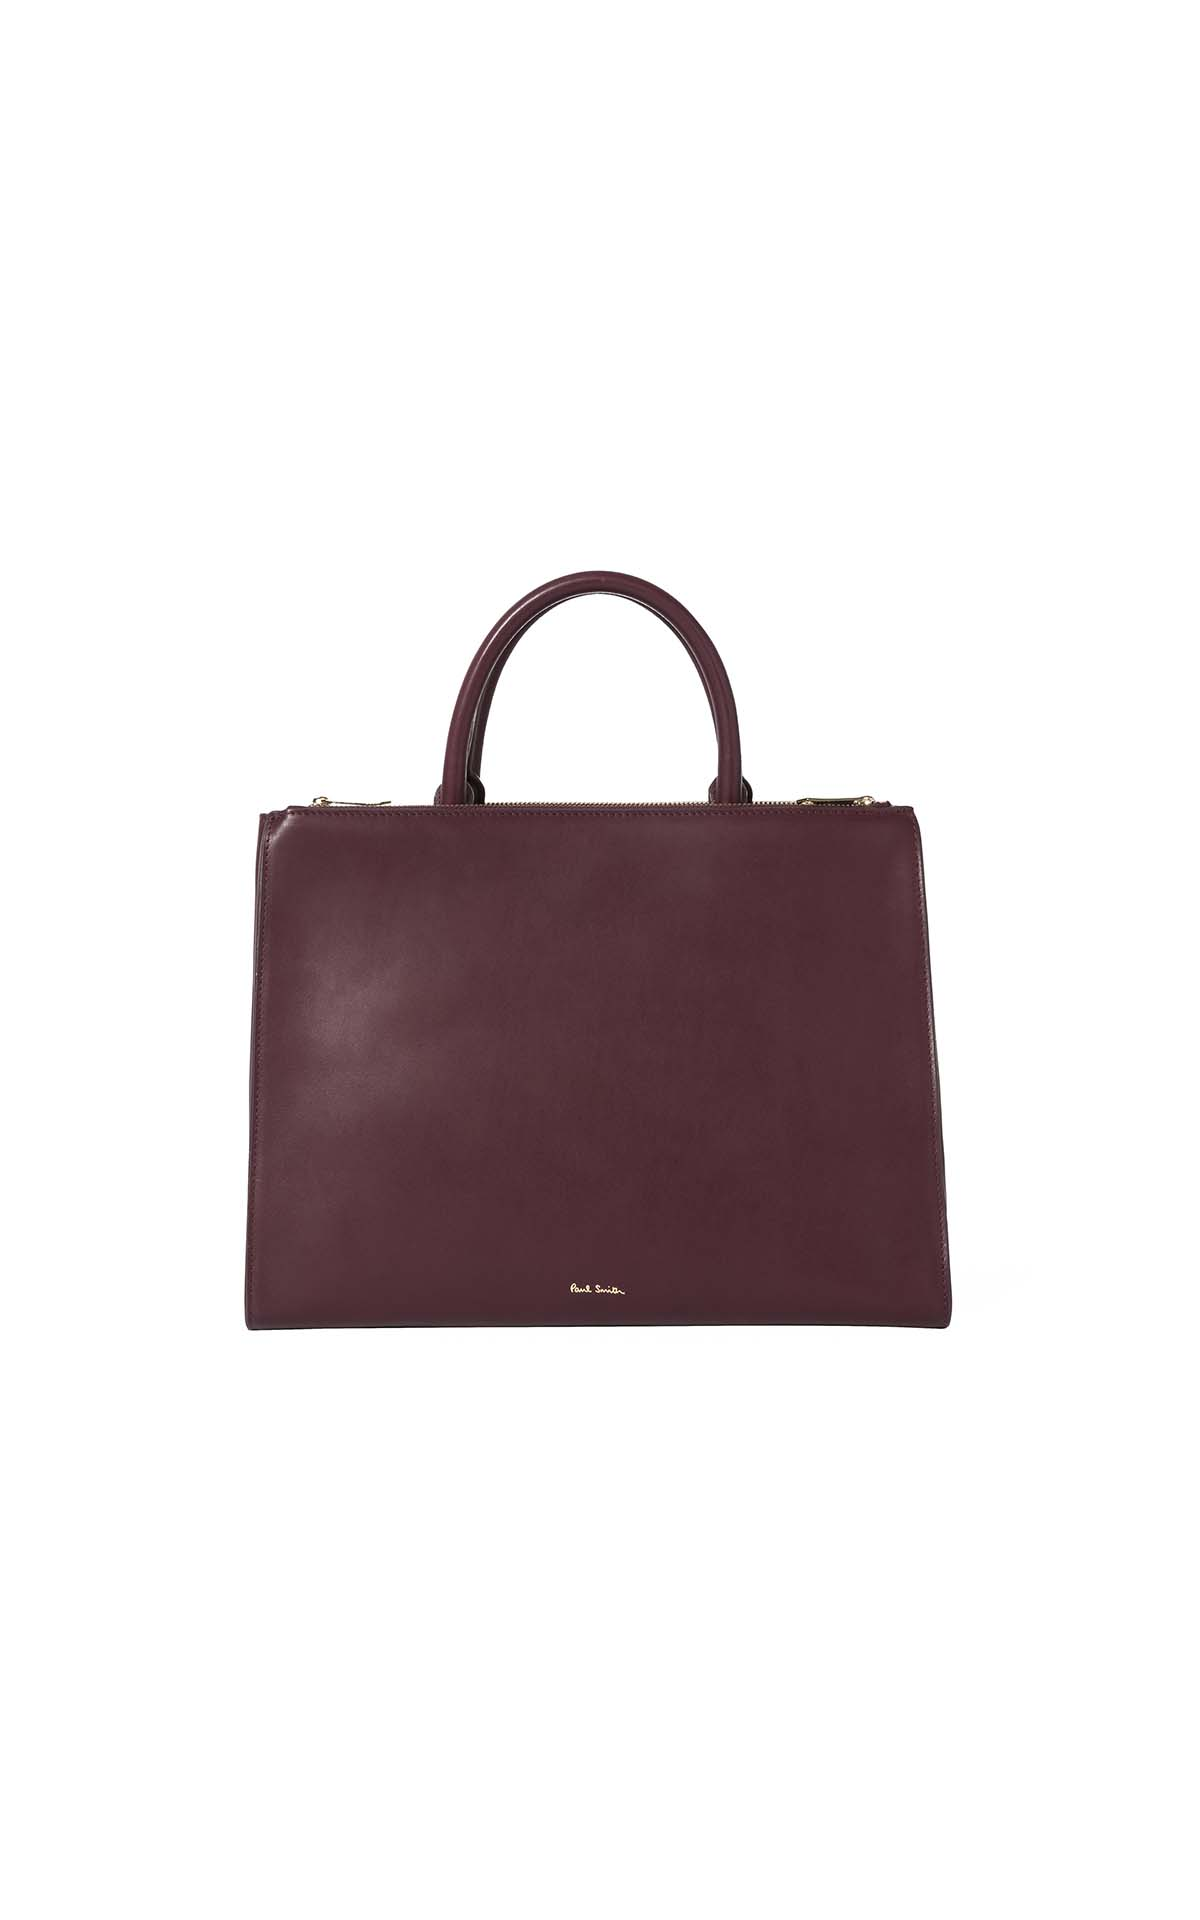 Paul Smith Women's Burgundy Bag at The Bicester Village Shopping Collection